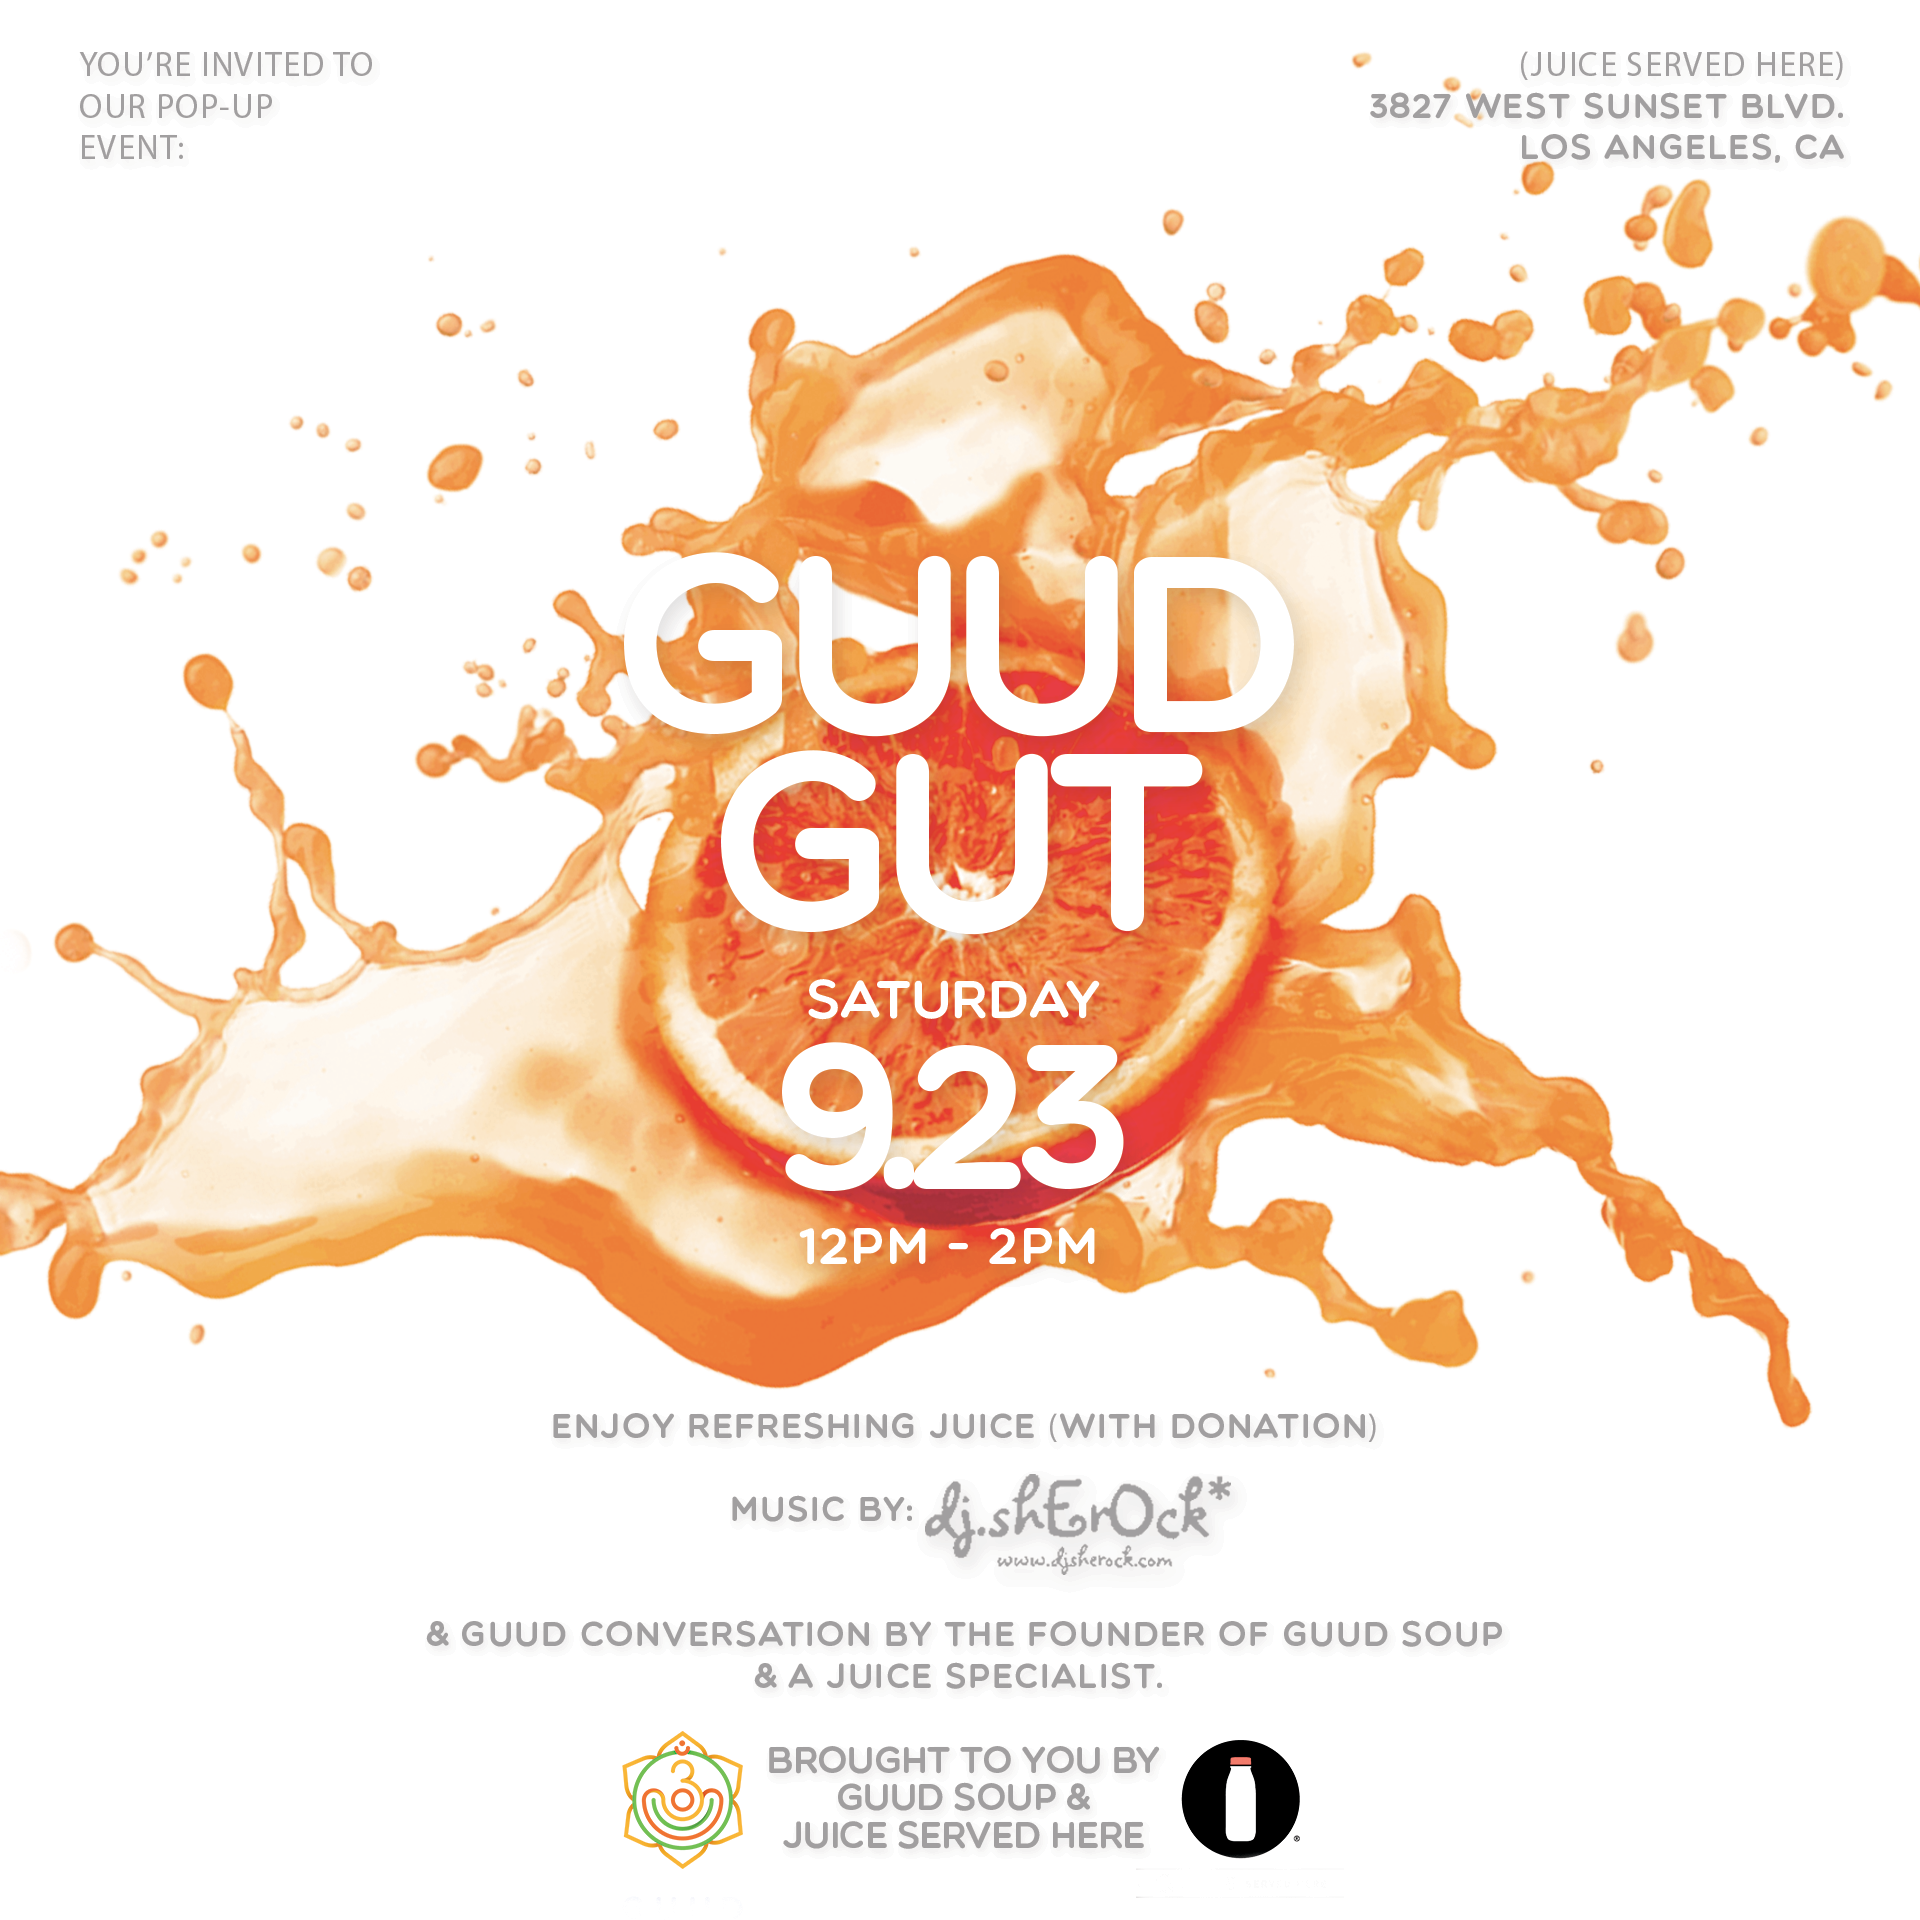 GUUD GUTGUUD SOUP X JUICE SERVED HERE -